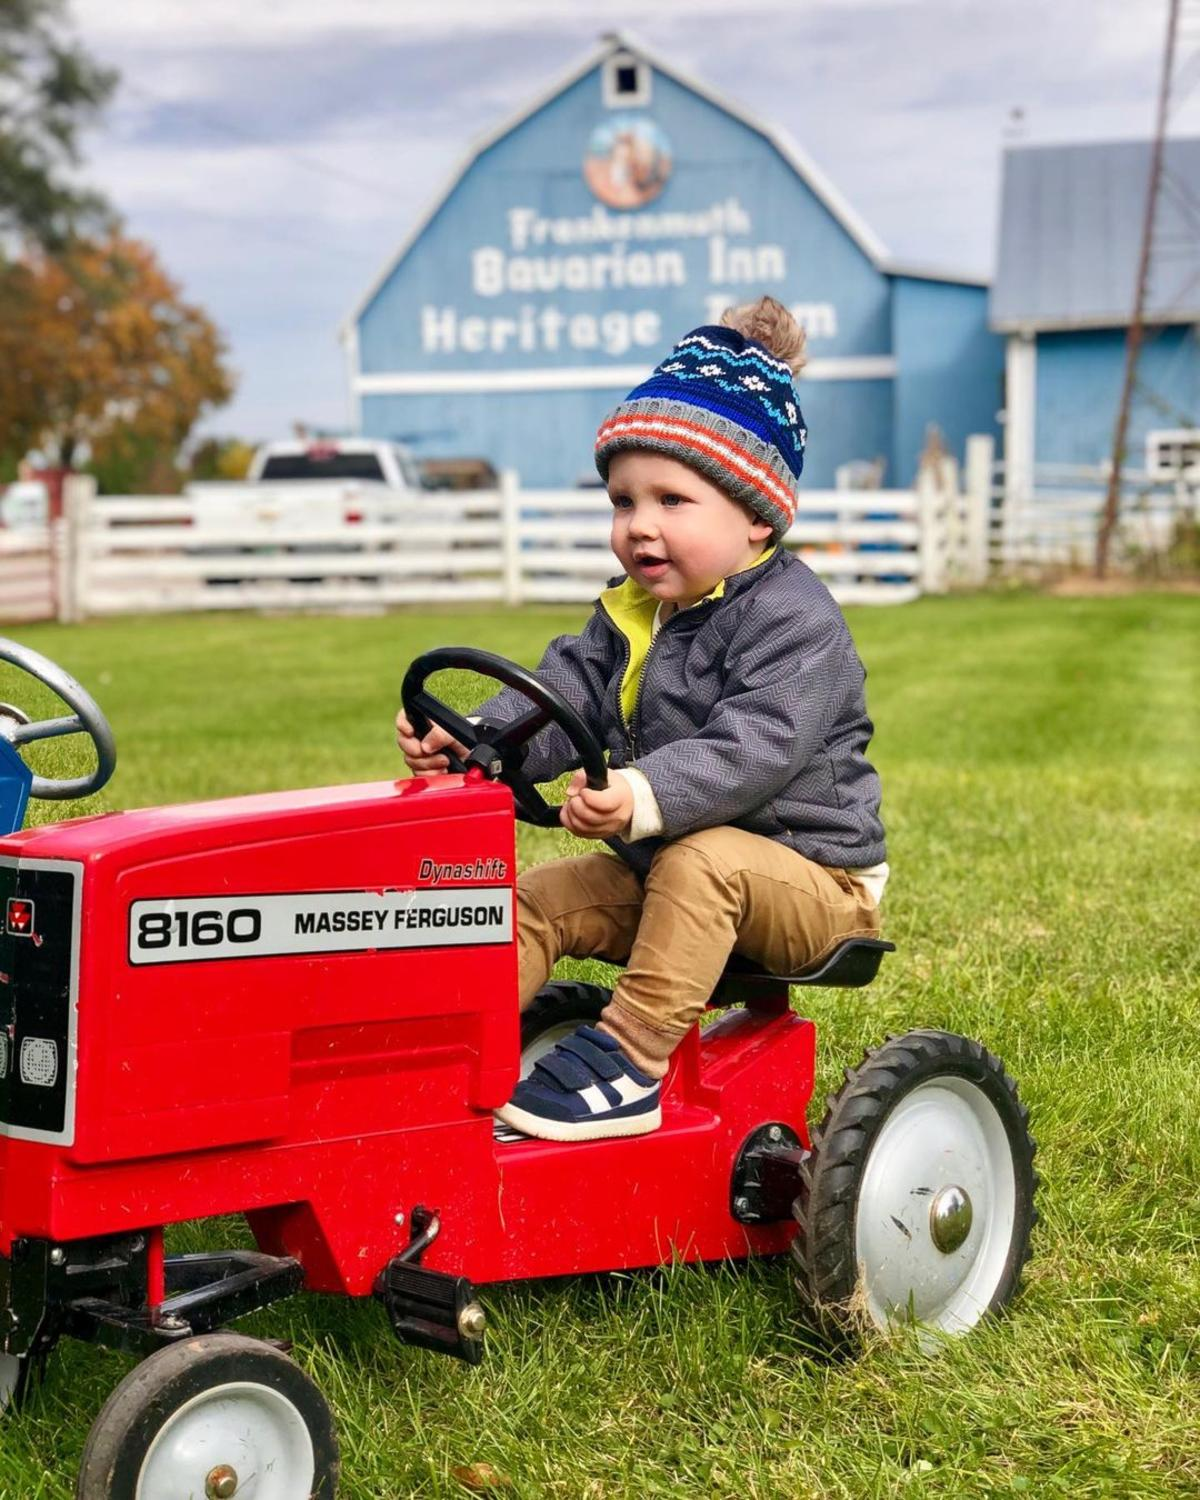 Little boy on a miniature red tractor at Grandpa Tiny's Farm in Frankenmuth, with a big, blue barn in the background